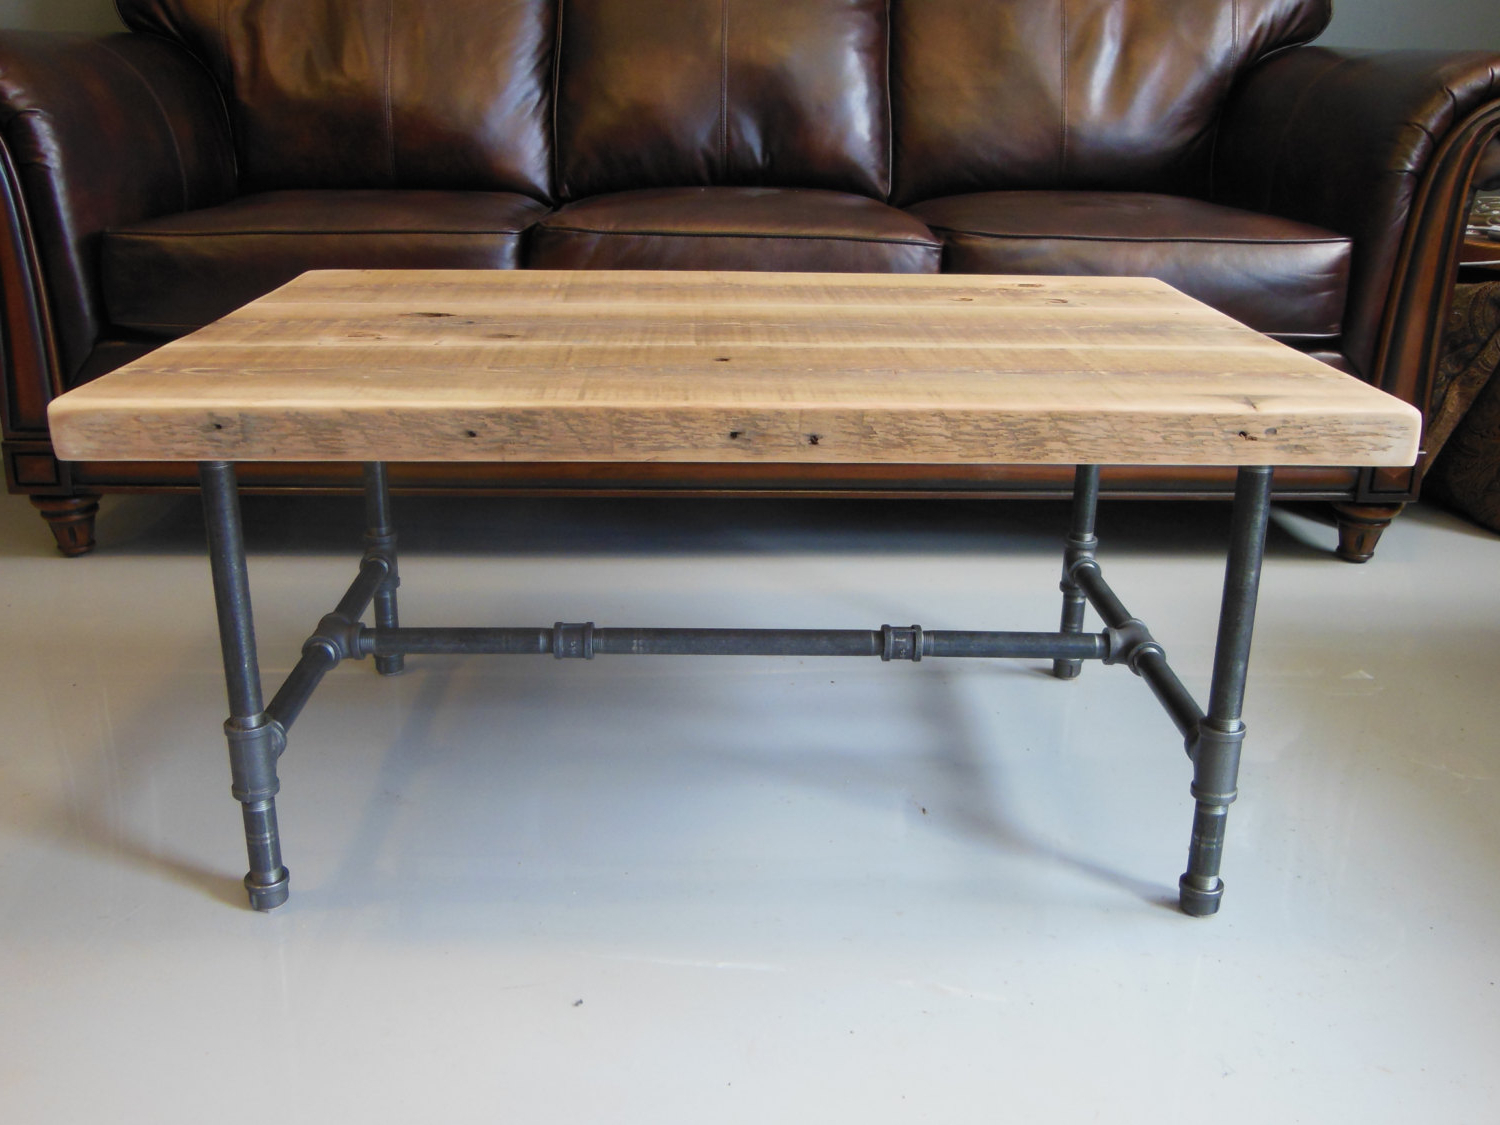 Latest Iron Wood Coffee Tables With Wheels Regarding Wood Coffee Table Legs Industrial – Thelightlaughed (View 2 of 20)